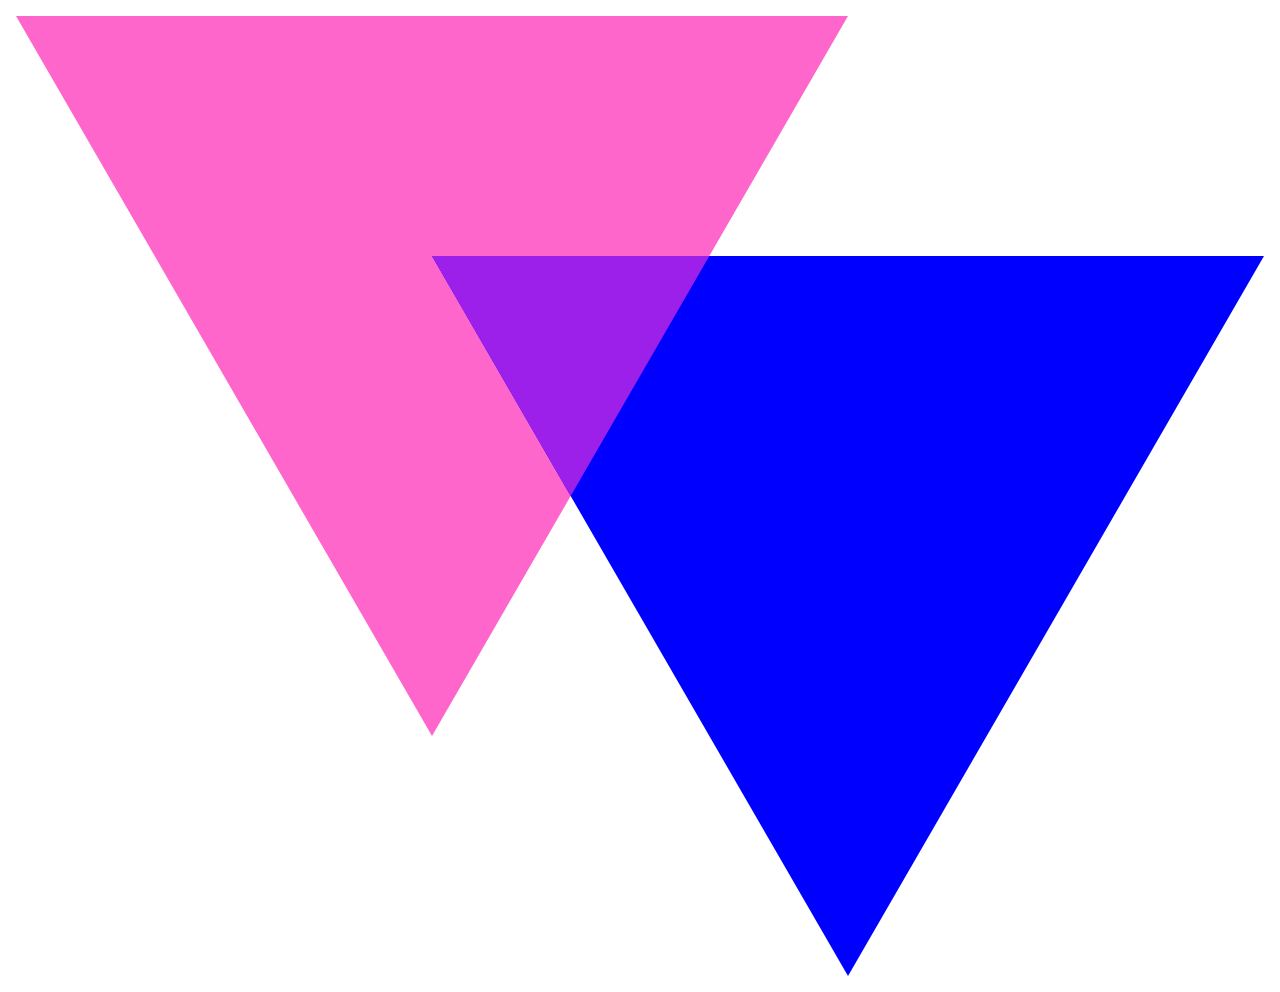 Triangles Vector Png image #46453